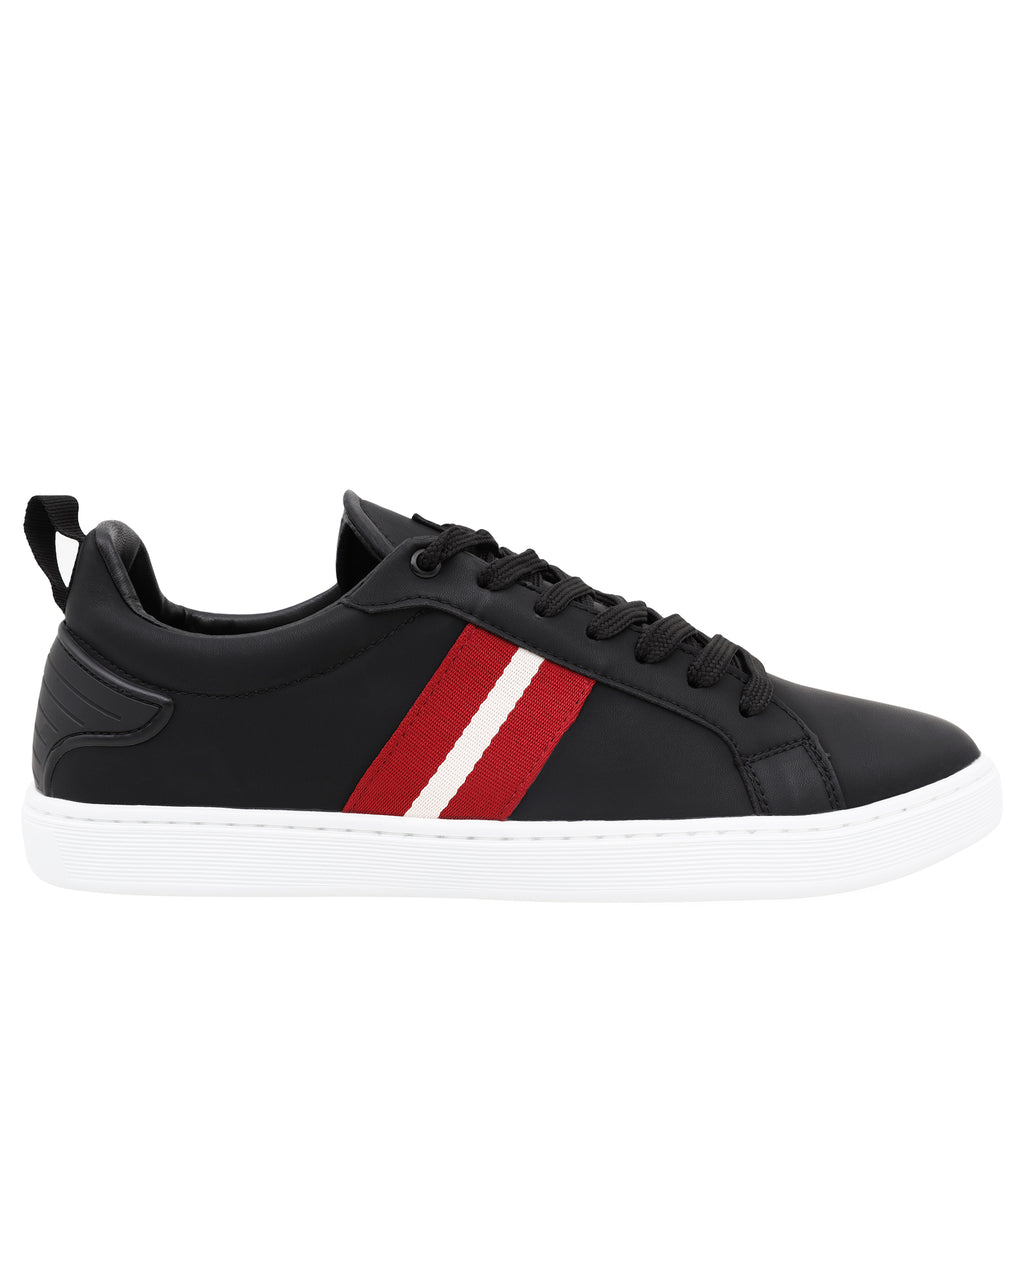 Tomaz TR999M Men's Sneakers (Black/Red/Org)